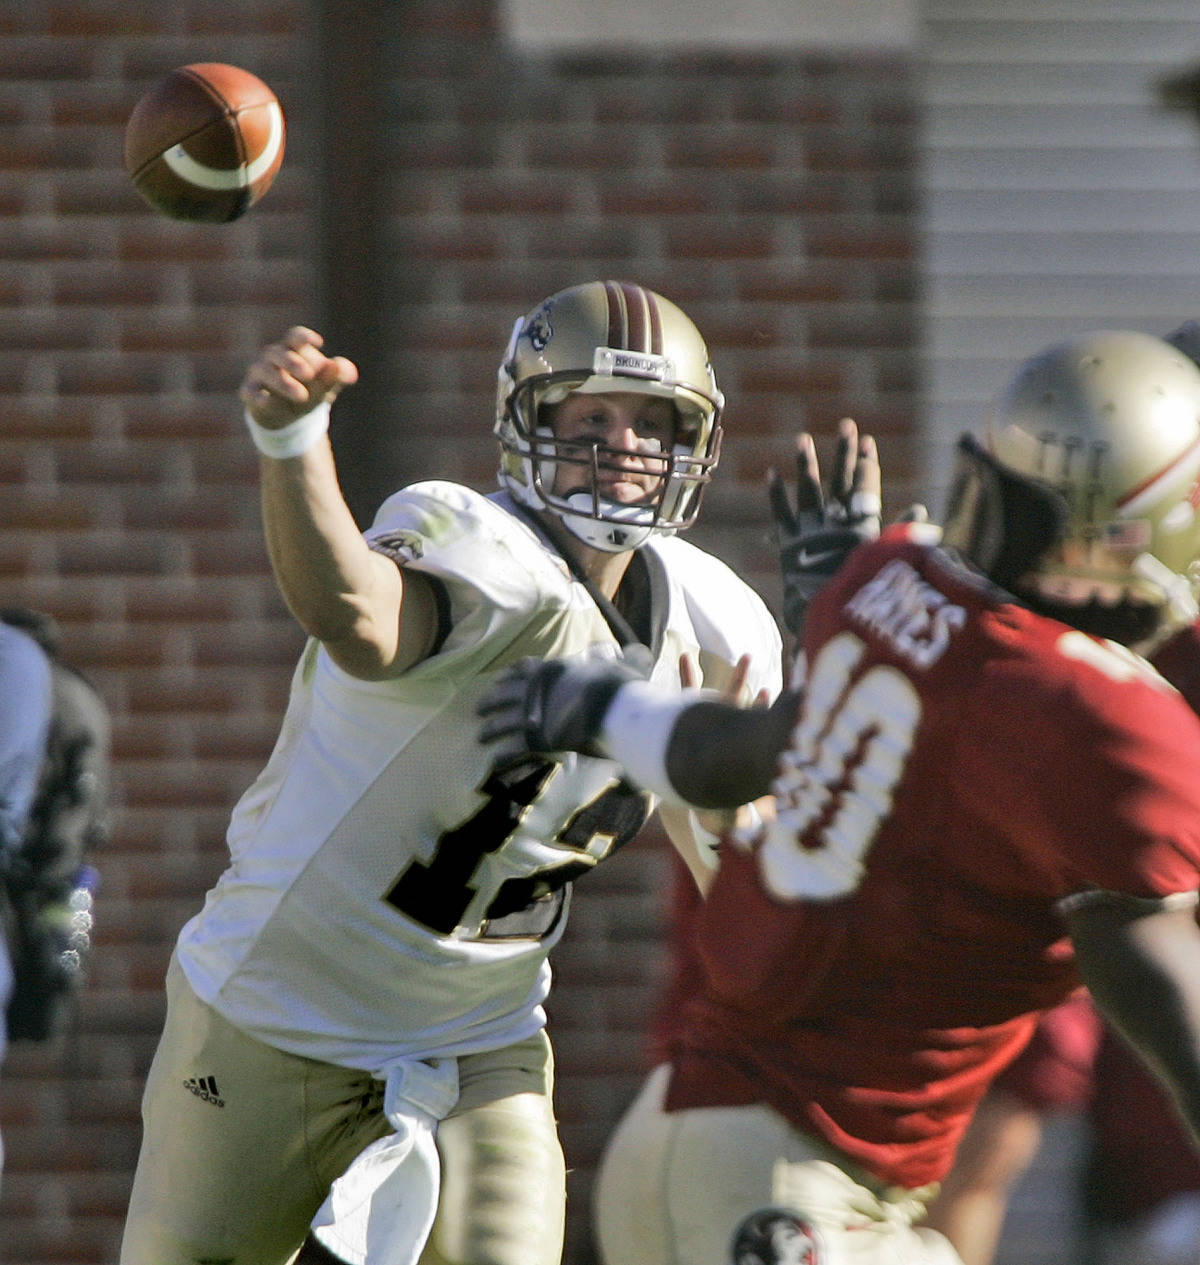 Western Michigan quarterback Ryan Cubit, left, throws a second-quarter pass during a college football game against Florida State, Saturday, Nov. 18, 2006, in Tallahassee, Fla. (AP Photo/Phil Coale)